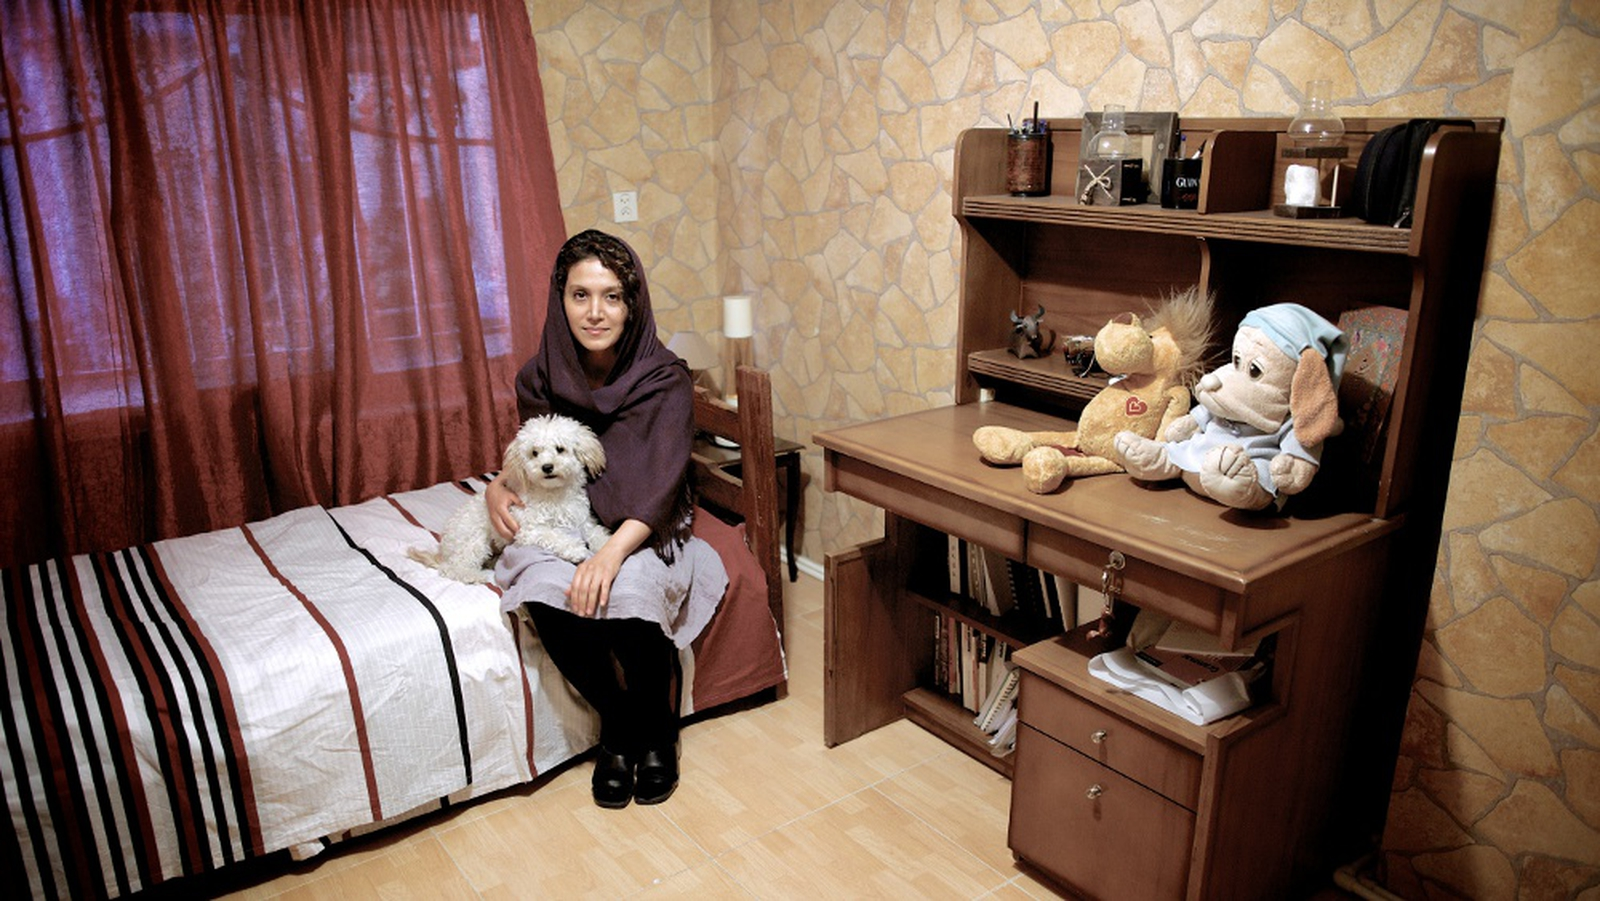 Iran's dog owners could be lashed under new laws